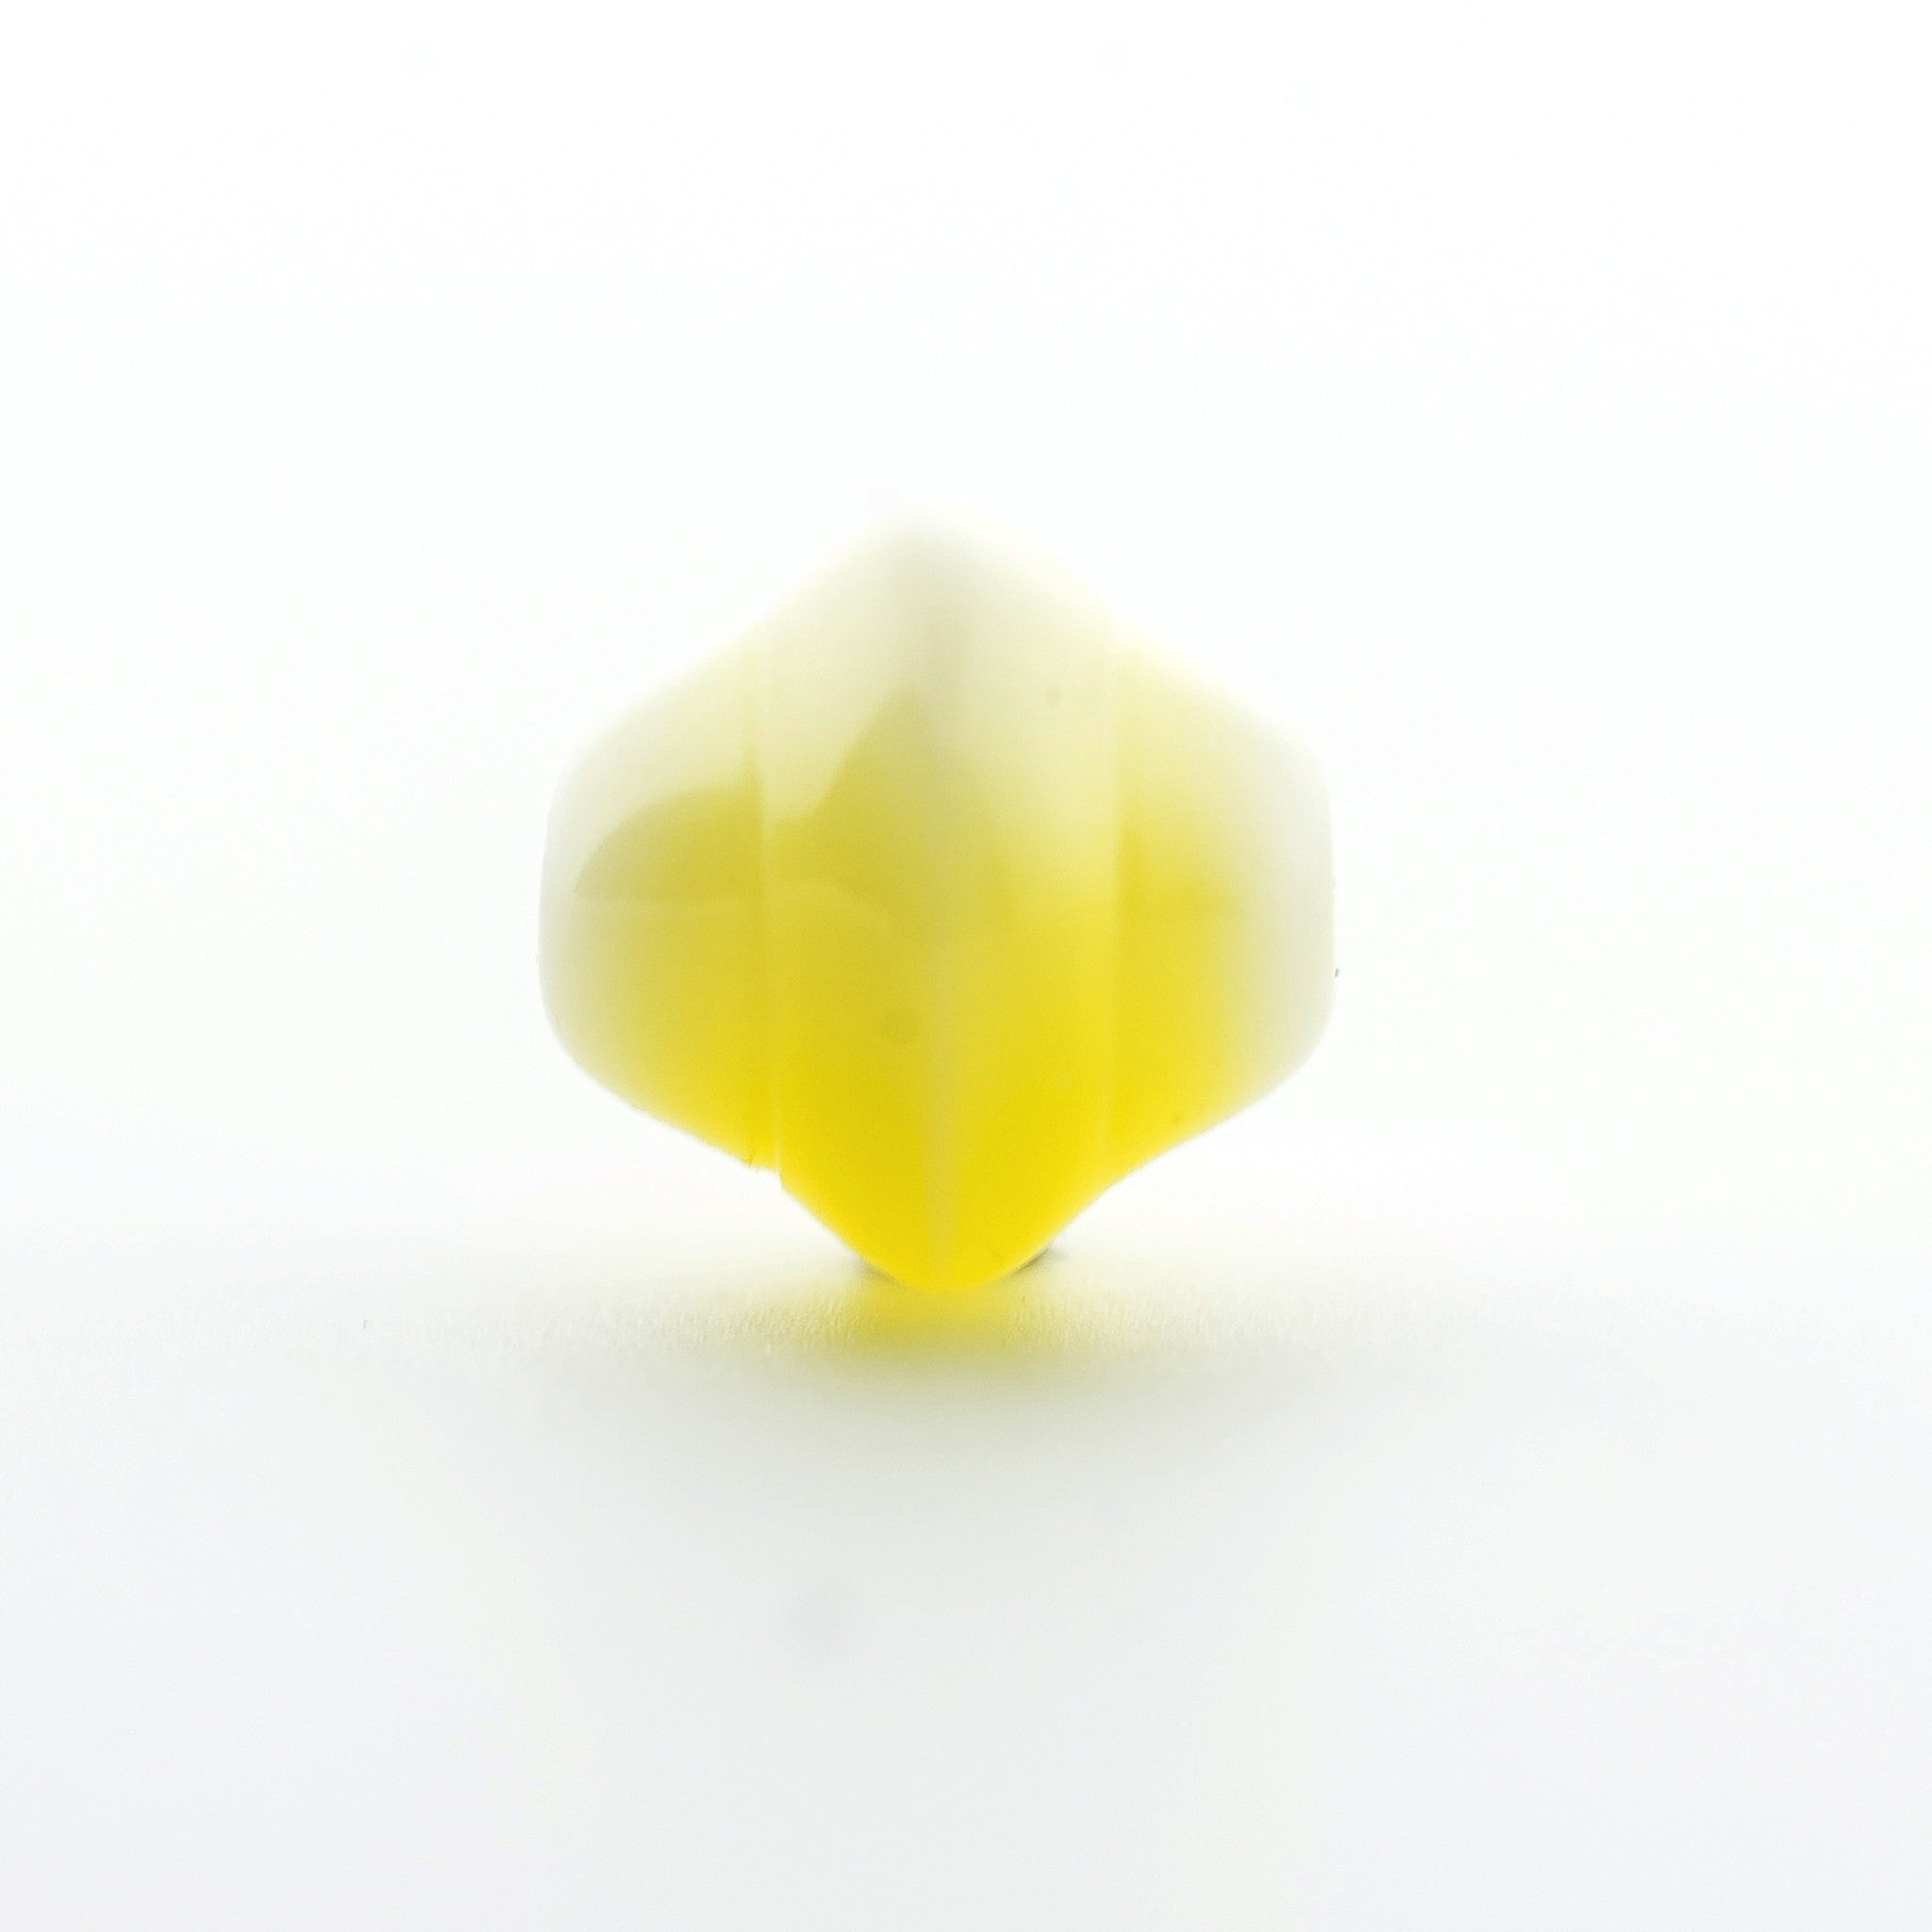 6MM Yellow Glass Pyramid Bead (144 pieces)